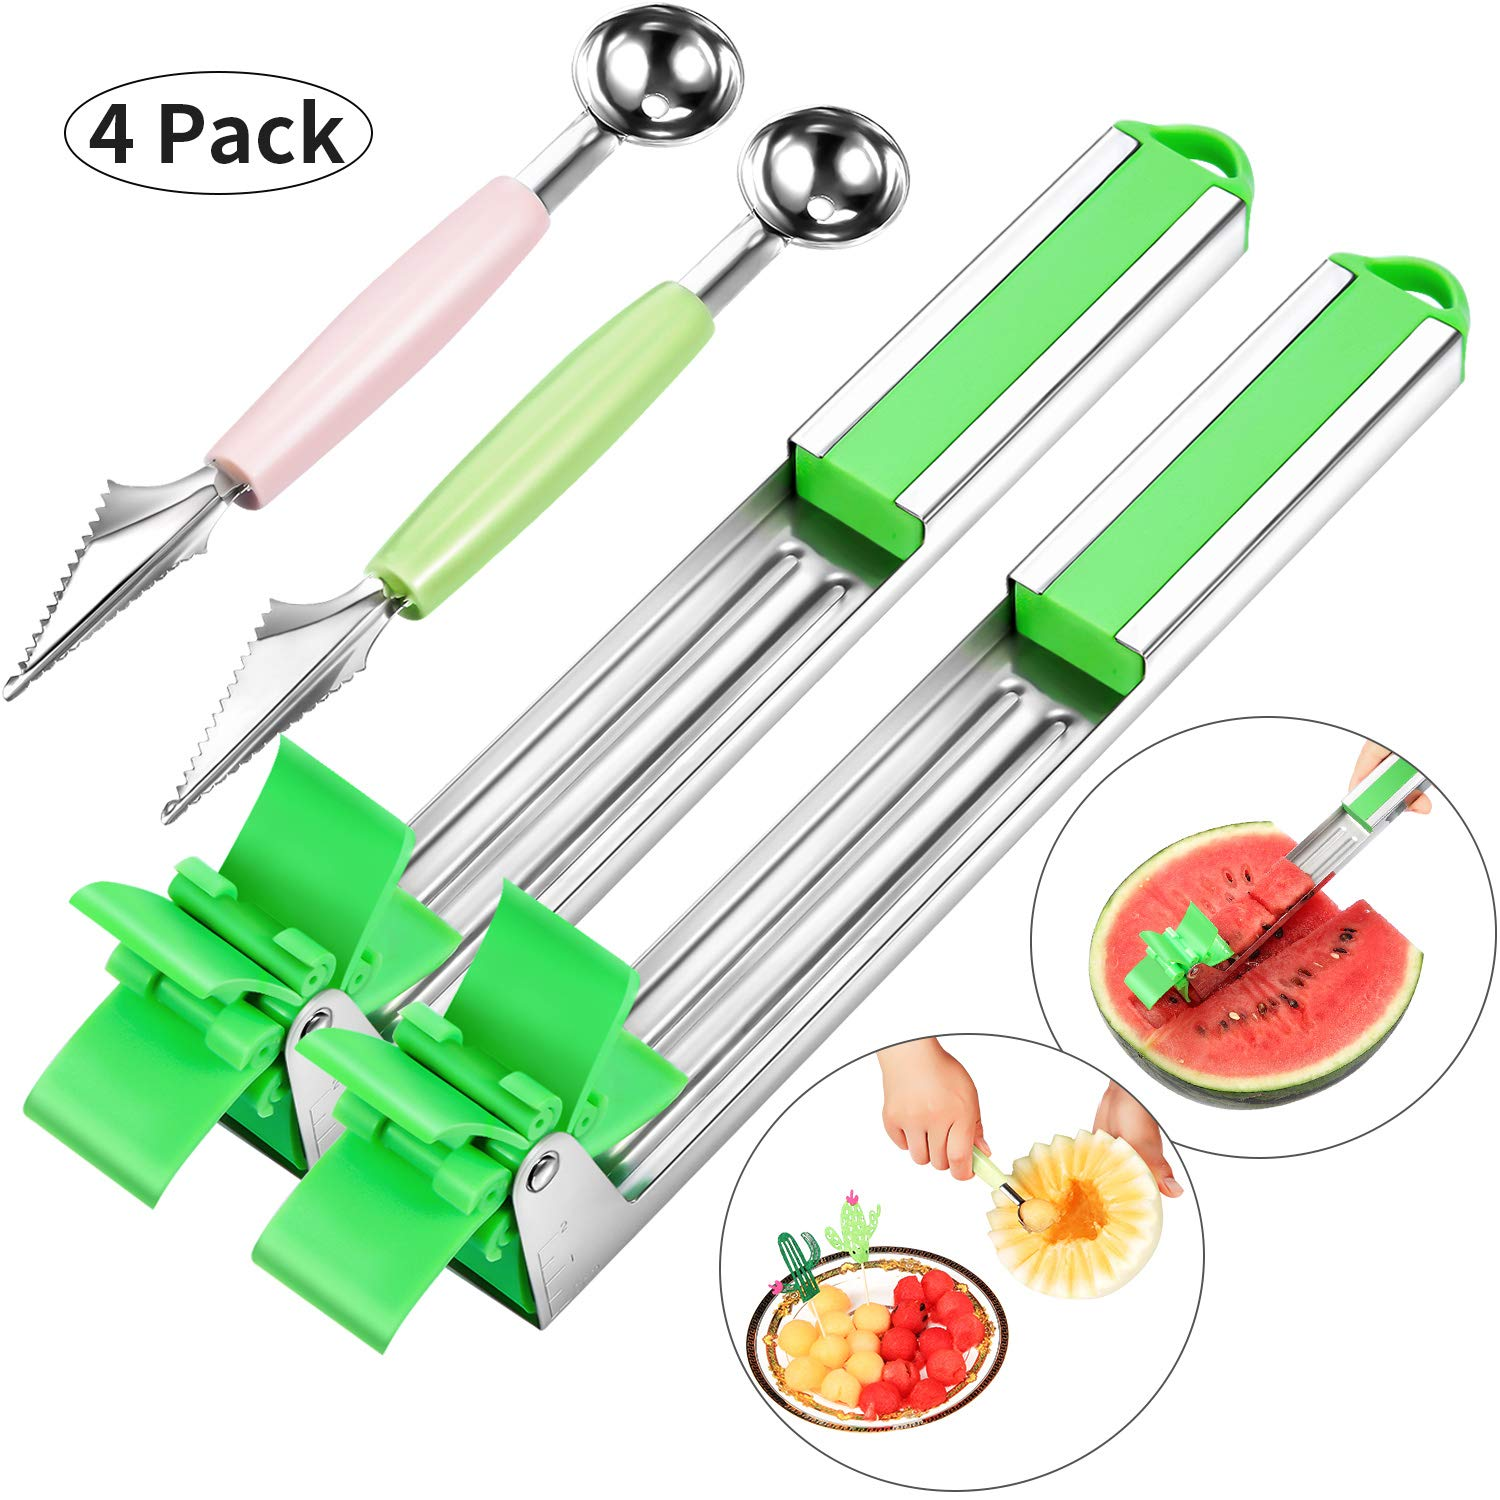 4 Pieces Stainless Steel Watermelon Slicer Cutter Kit Melon Baller Scoop Novel Windmill Watermelon Cutter Tongs Knife Corer Fruit Vegetable Tools Kitchen Gadgets by Maitys